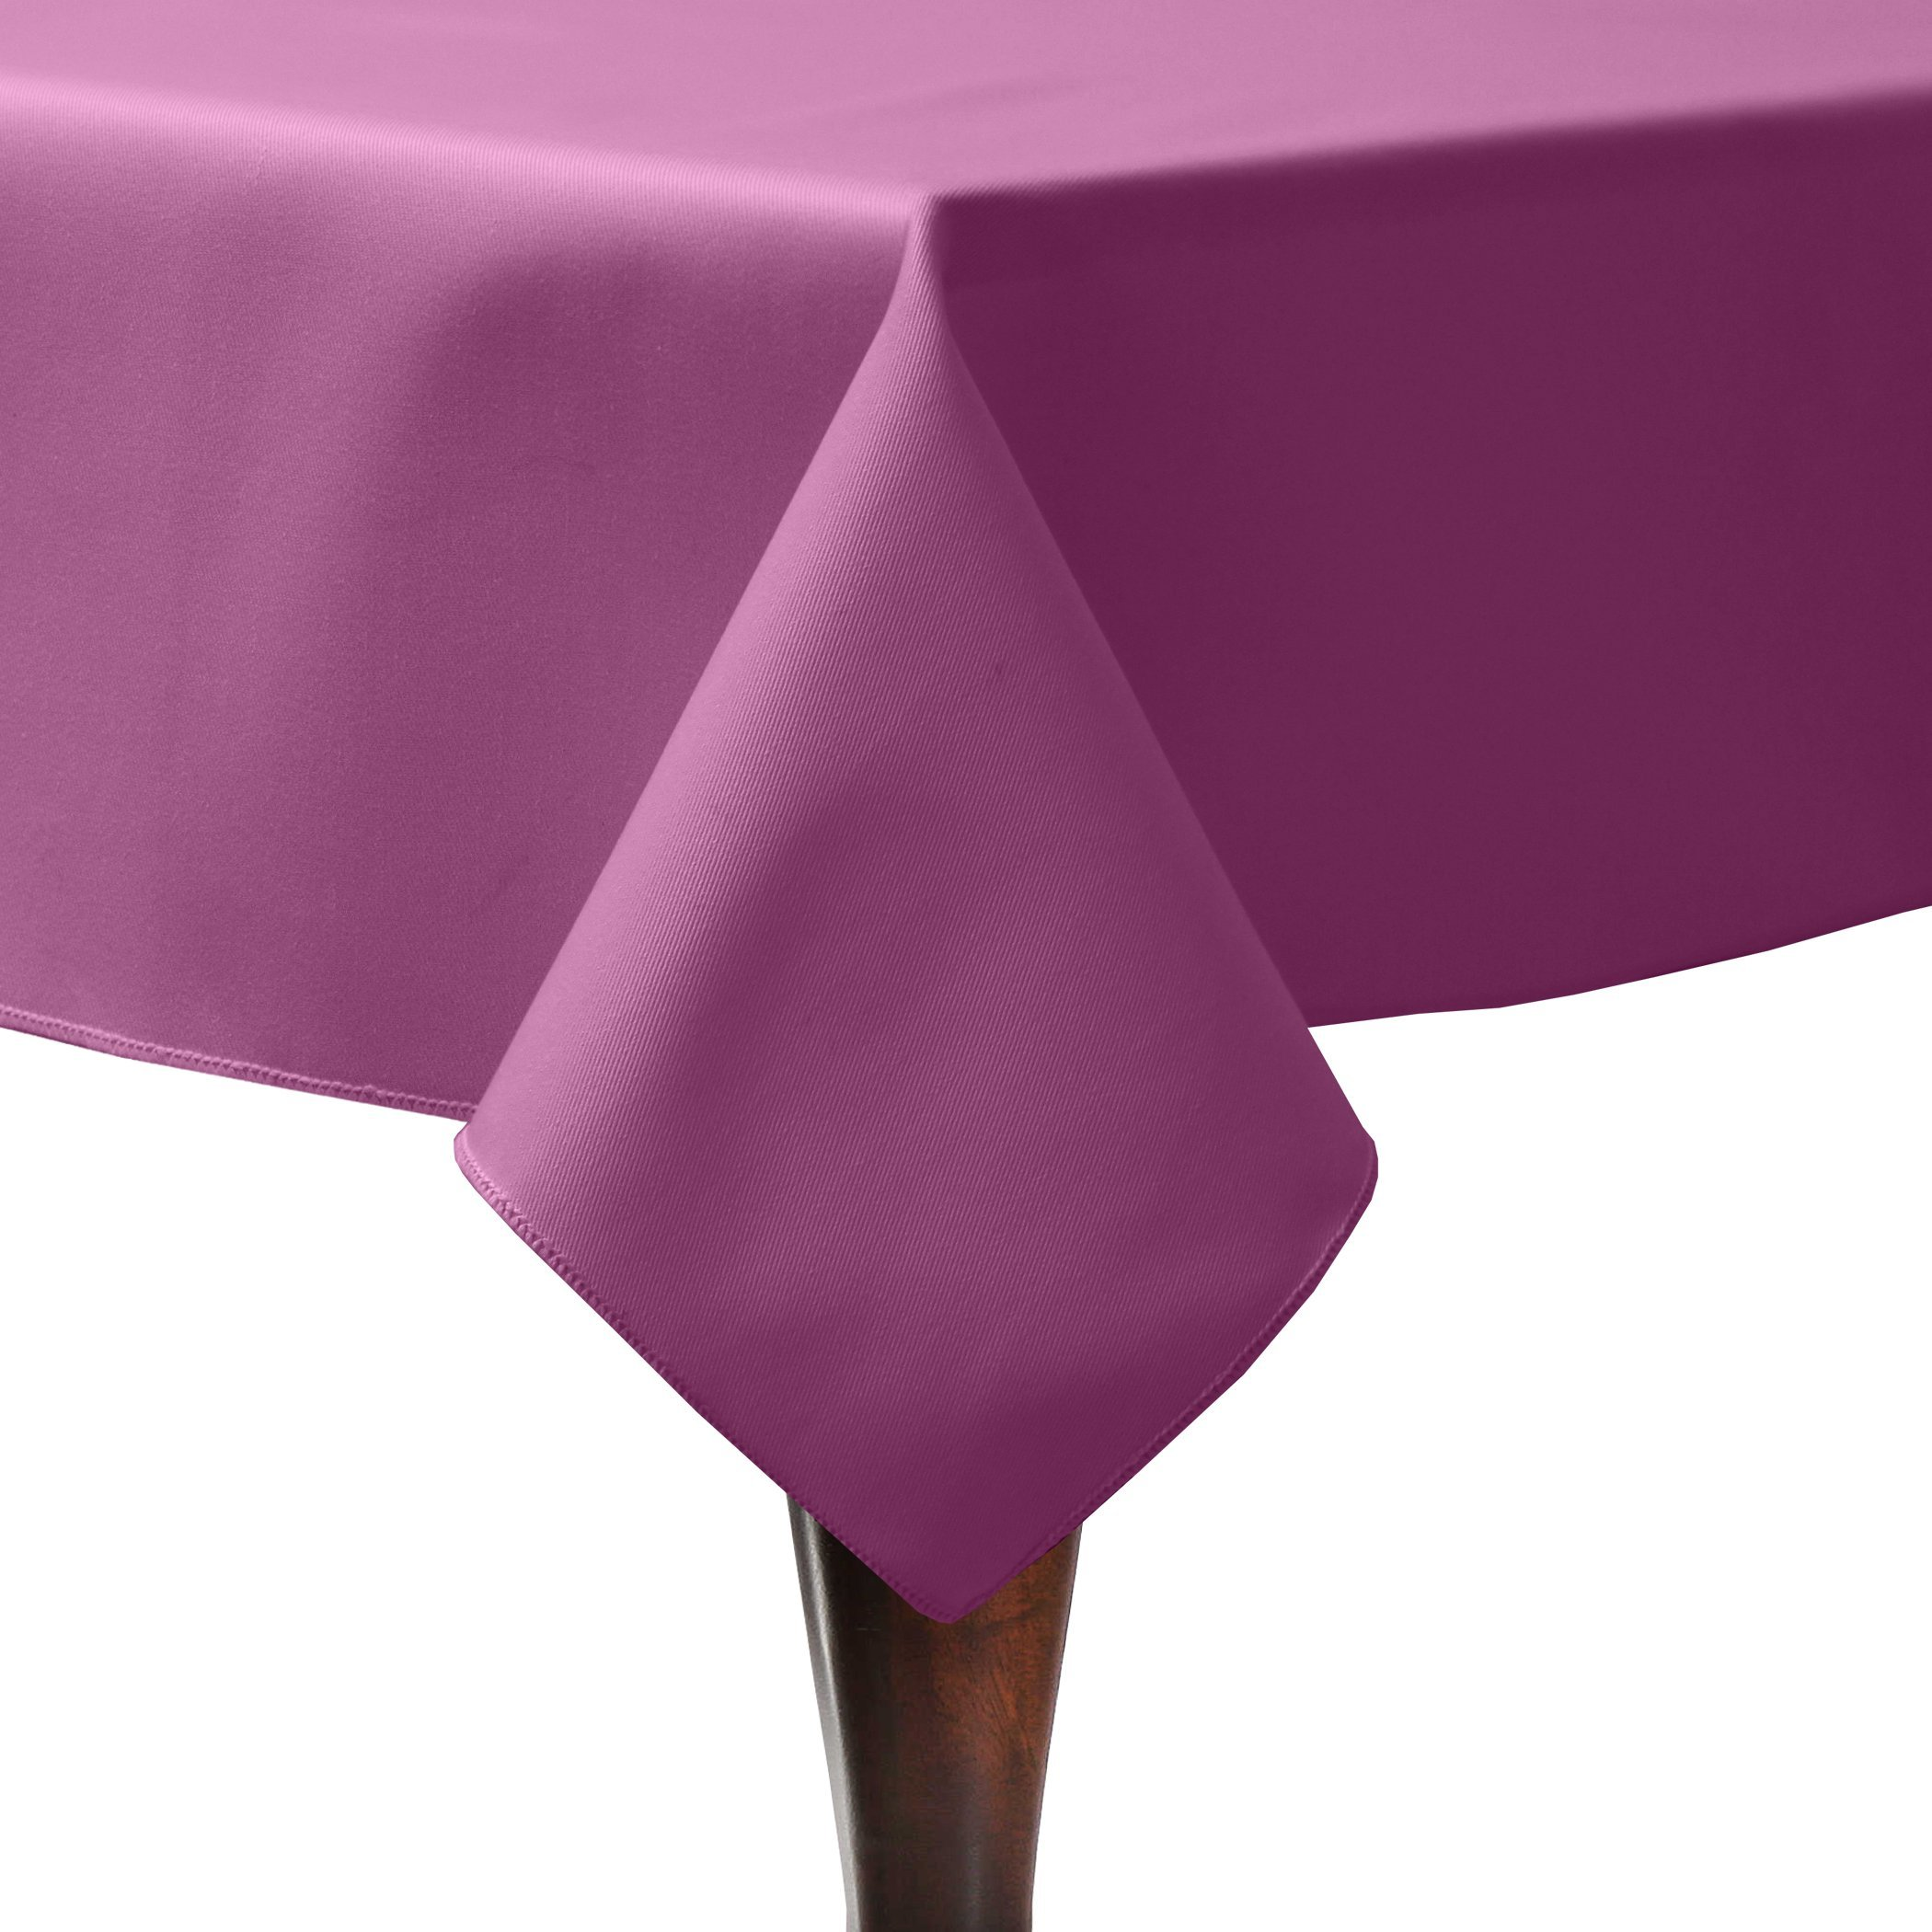 Ultimate Textile (75 Pack) Poly-cotton Twill 45 x 45-Inch Square Tablecloth - for Restaurant and Catering, Hotel or Home Dining use, Plumberry